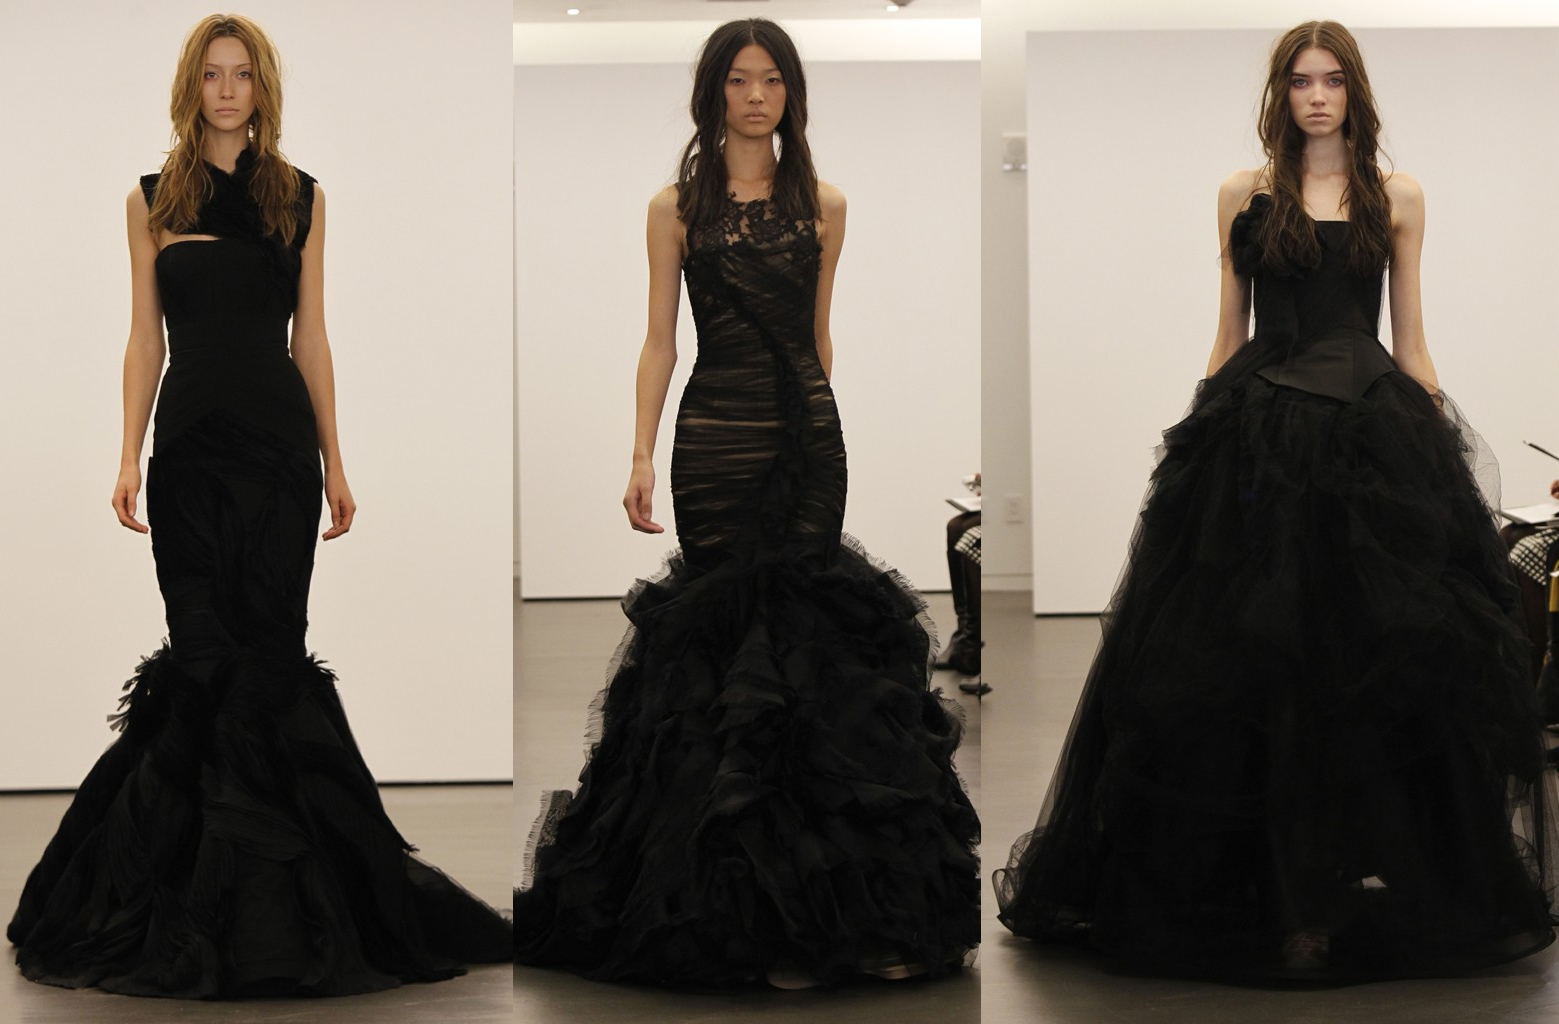 Vera Wang Black Wedding Dress Collection 31 Trend Here us a look